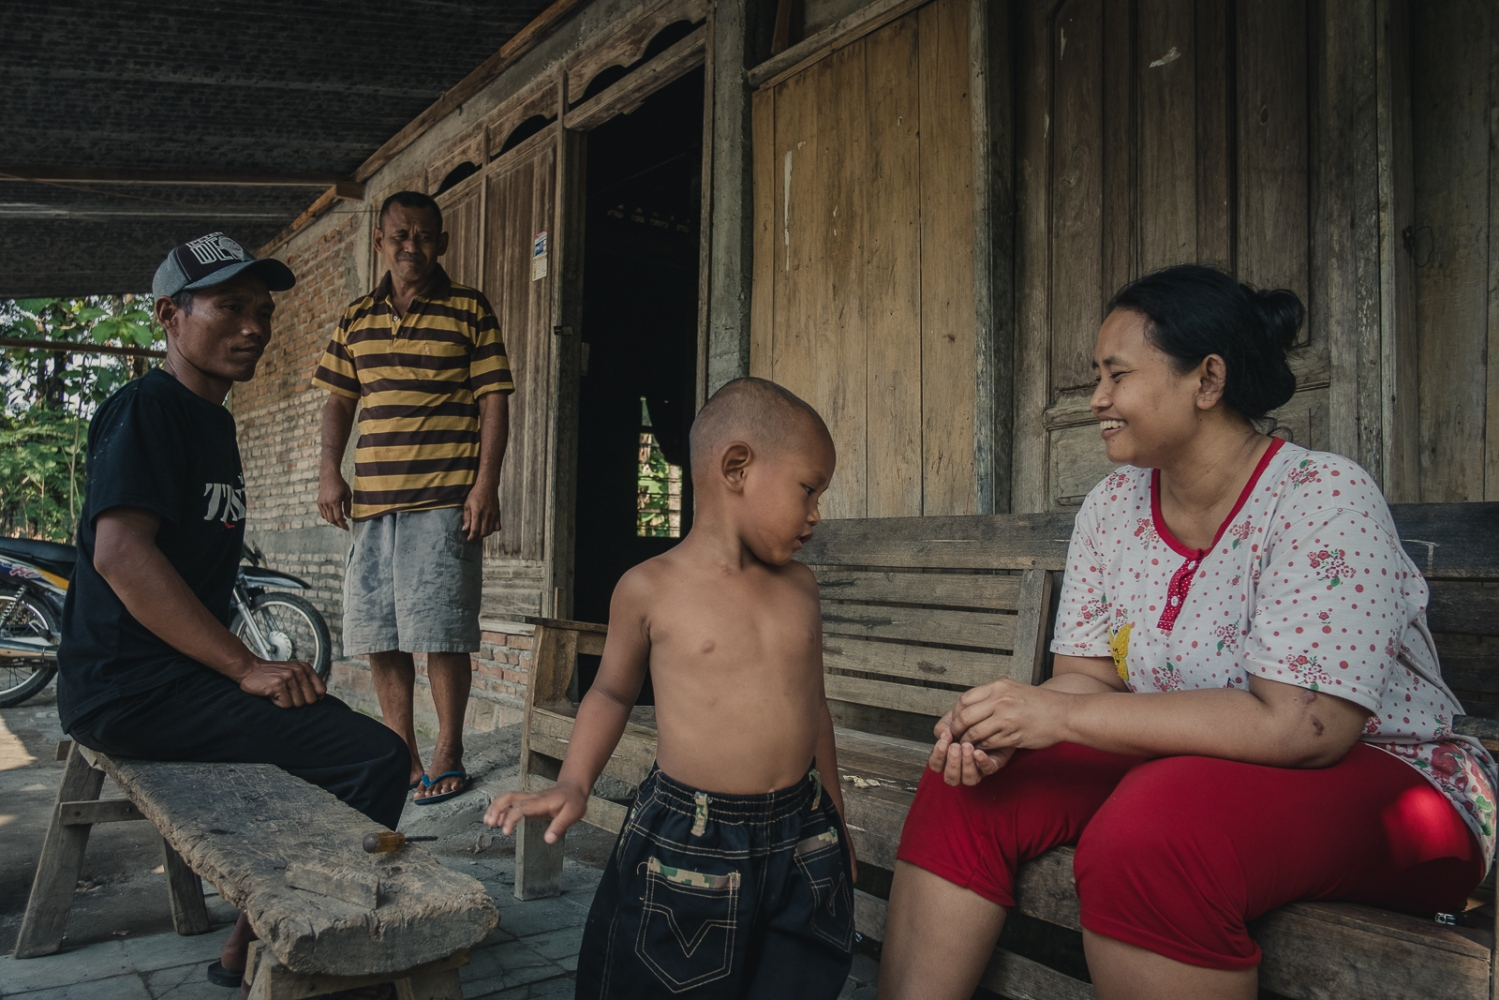 Indonesia, 2016. (From Left) Mansyur, 39 and his father in law Mukshin, 55 look on as the 4 year old son of Mansyur, Safa Mustajab plays with his mother Nina Duwi Koriah, 29 in their family home in the village of Winong near the town of Ngawi, East Java. Nina lives here with her husband, her two children, her father and her two brothers.